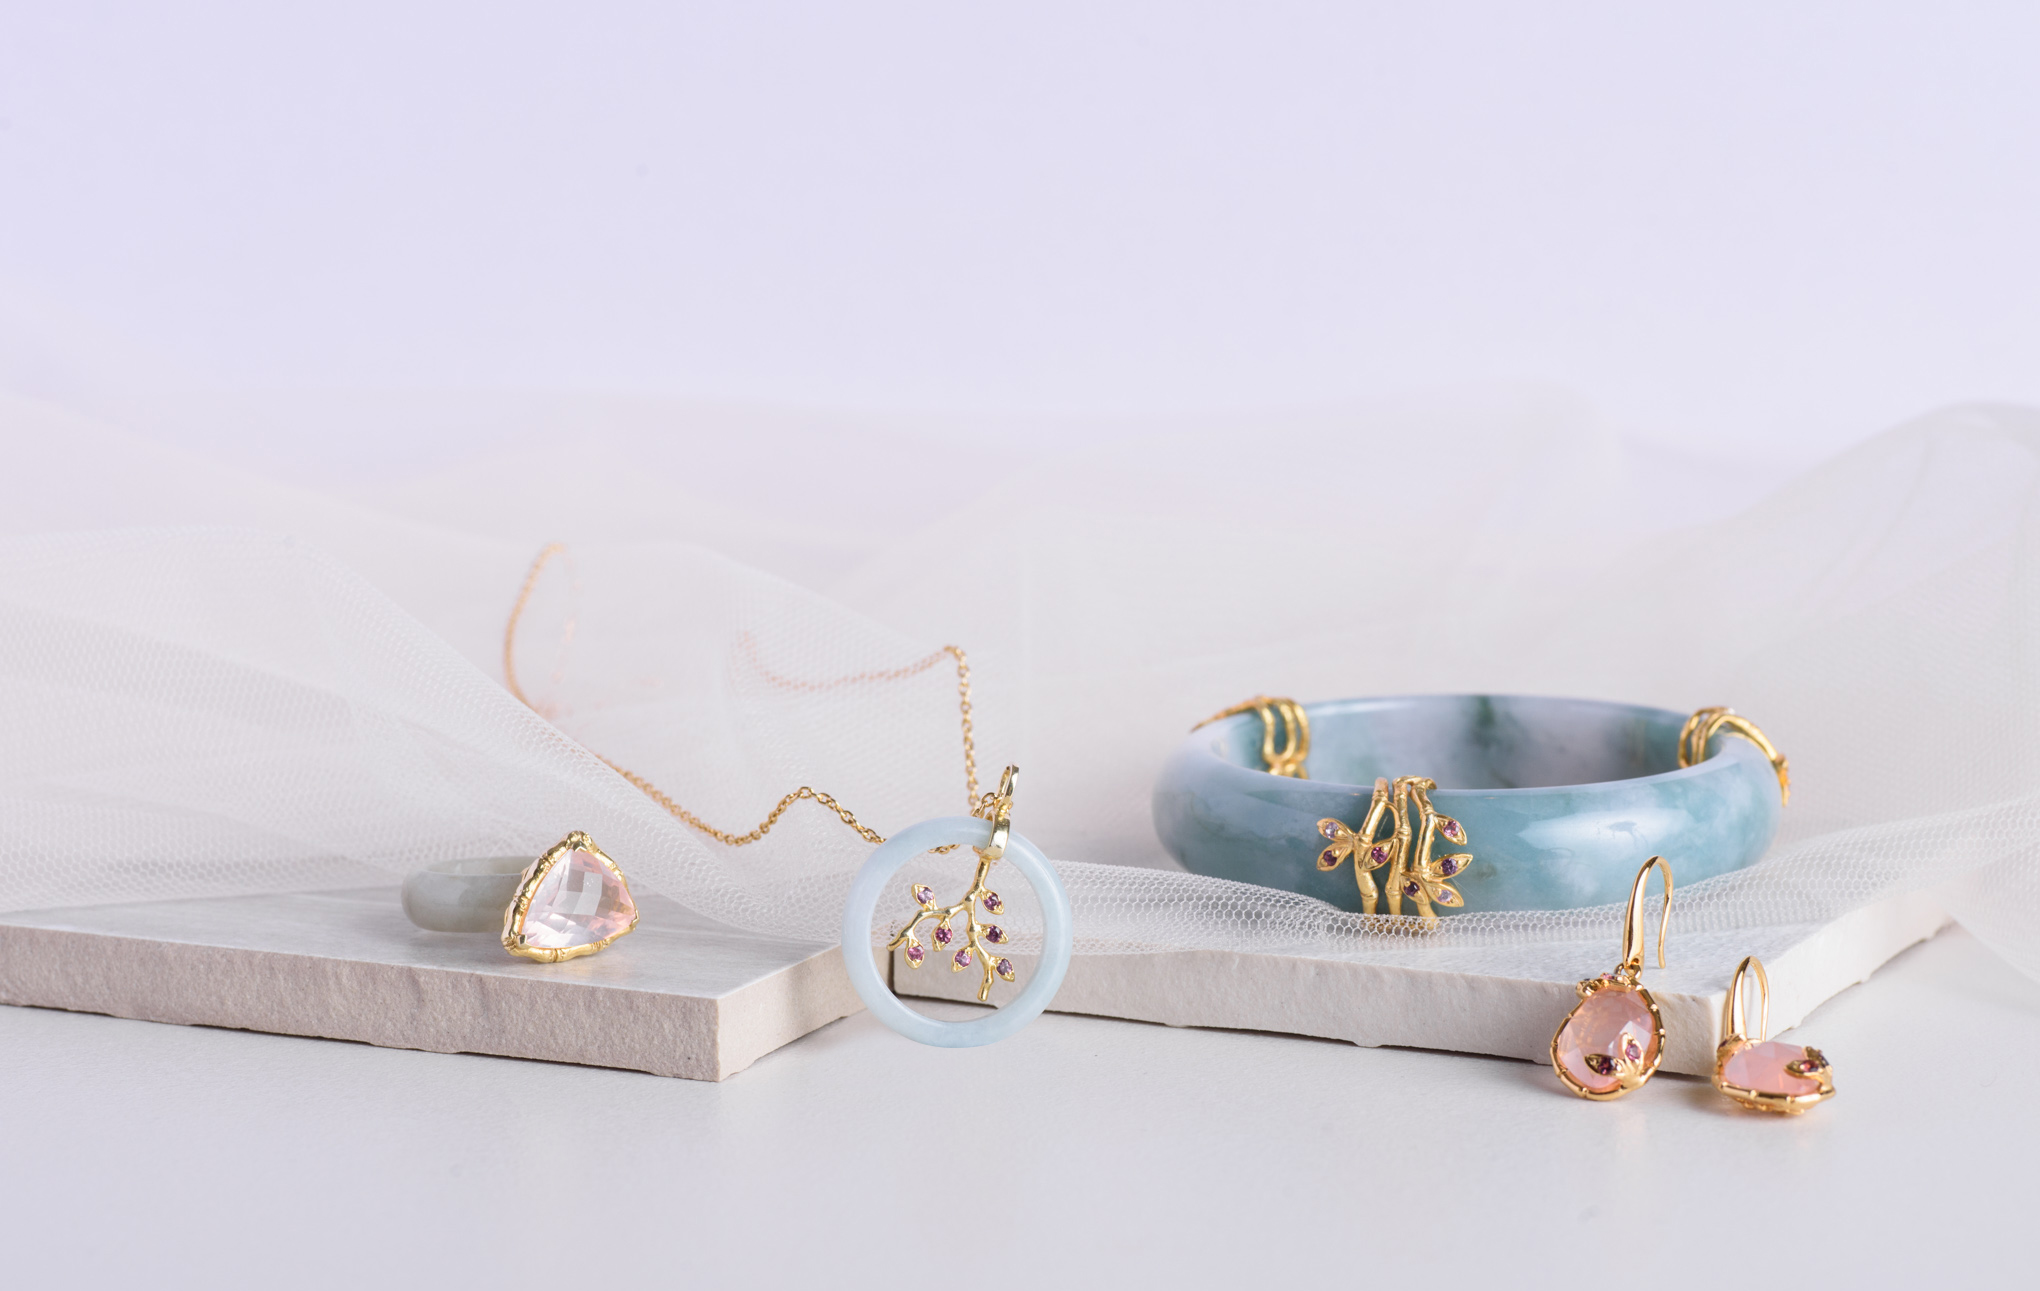 The Bamboo collection that triumphantly exudes both feminine and minimalist charms.